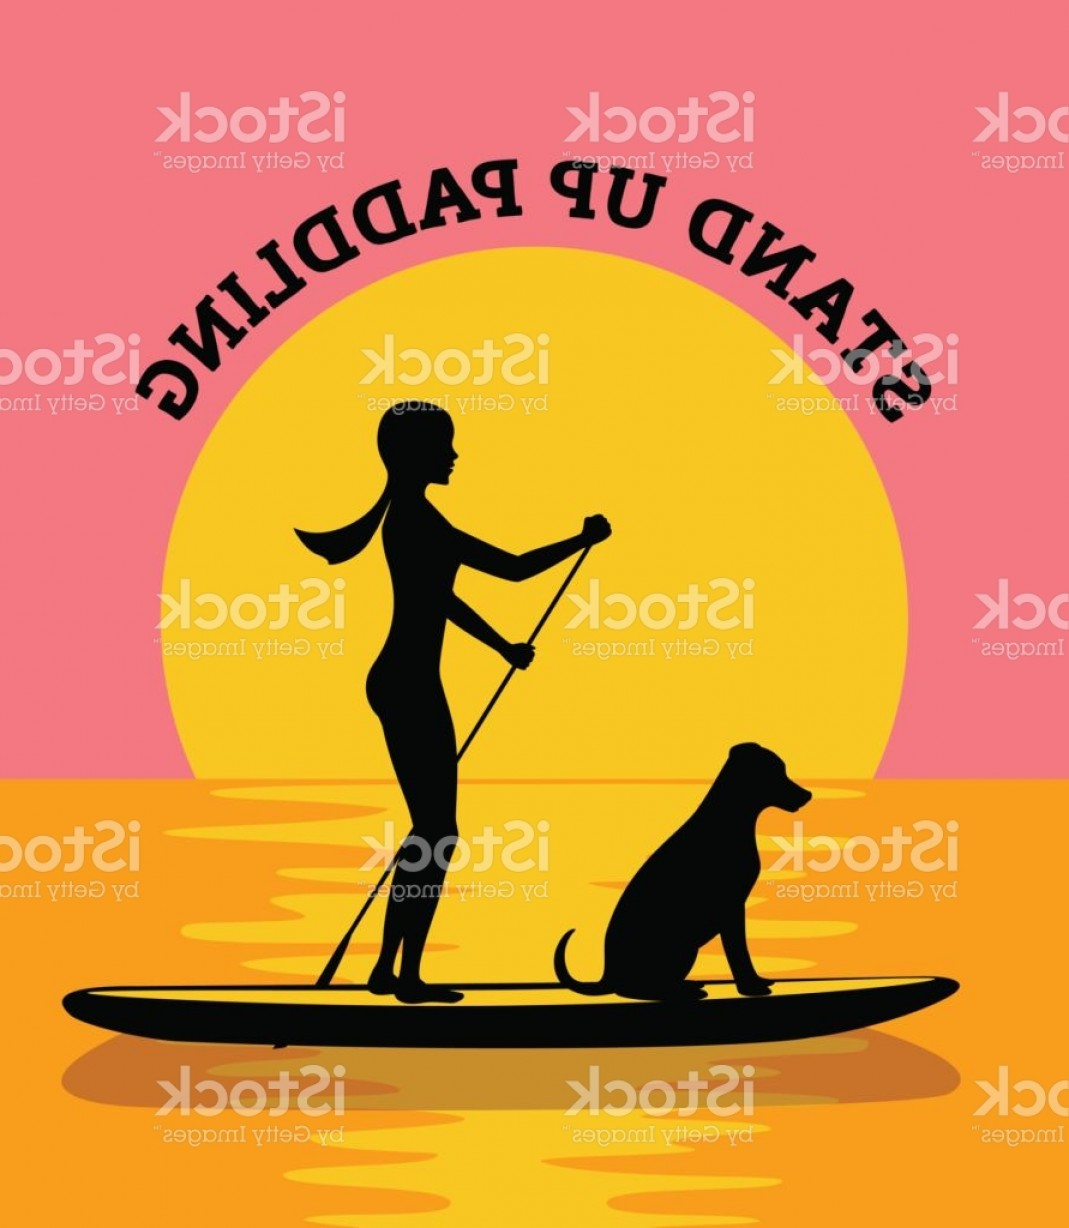 Stand Up Paddle Boarder Vector: Stand Up Paddleboard At Sunset Vector Illustration Woman And Dog Silhouette Gm